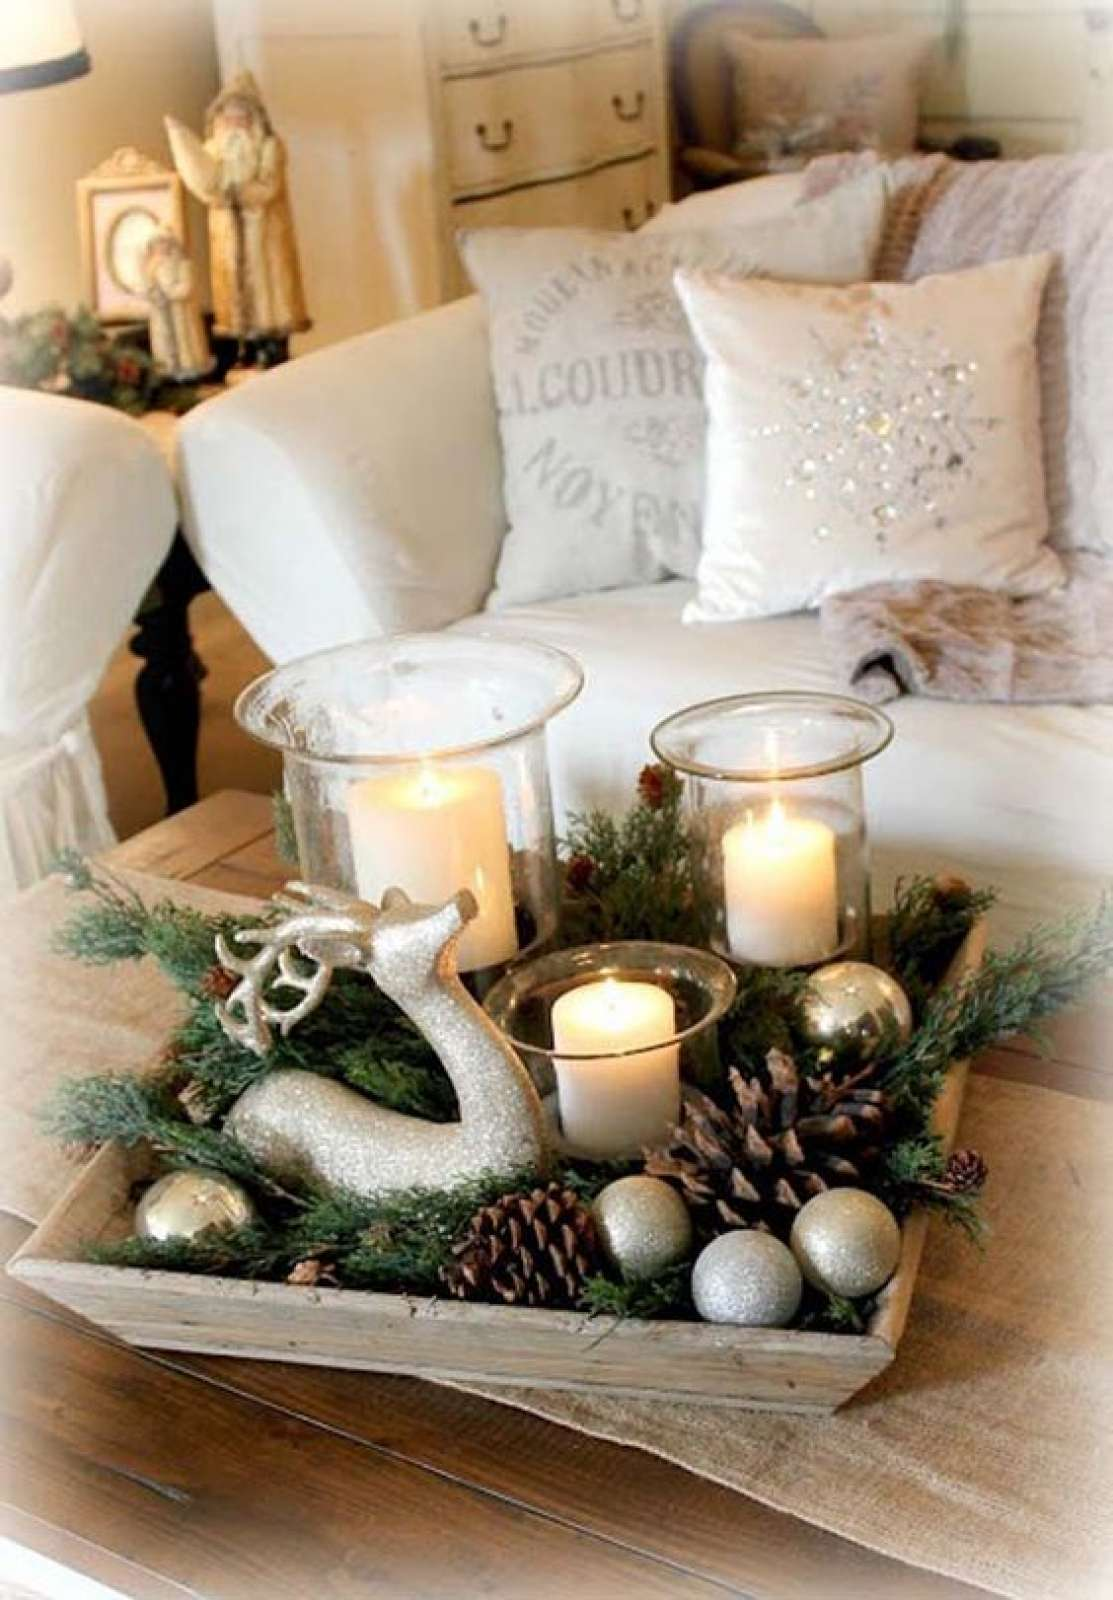 14. Reindeer Coffee Table Centerpiece